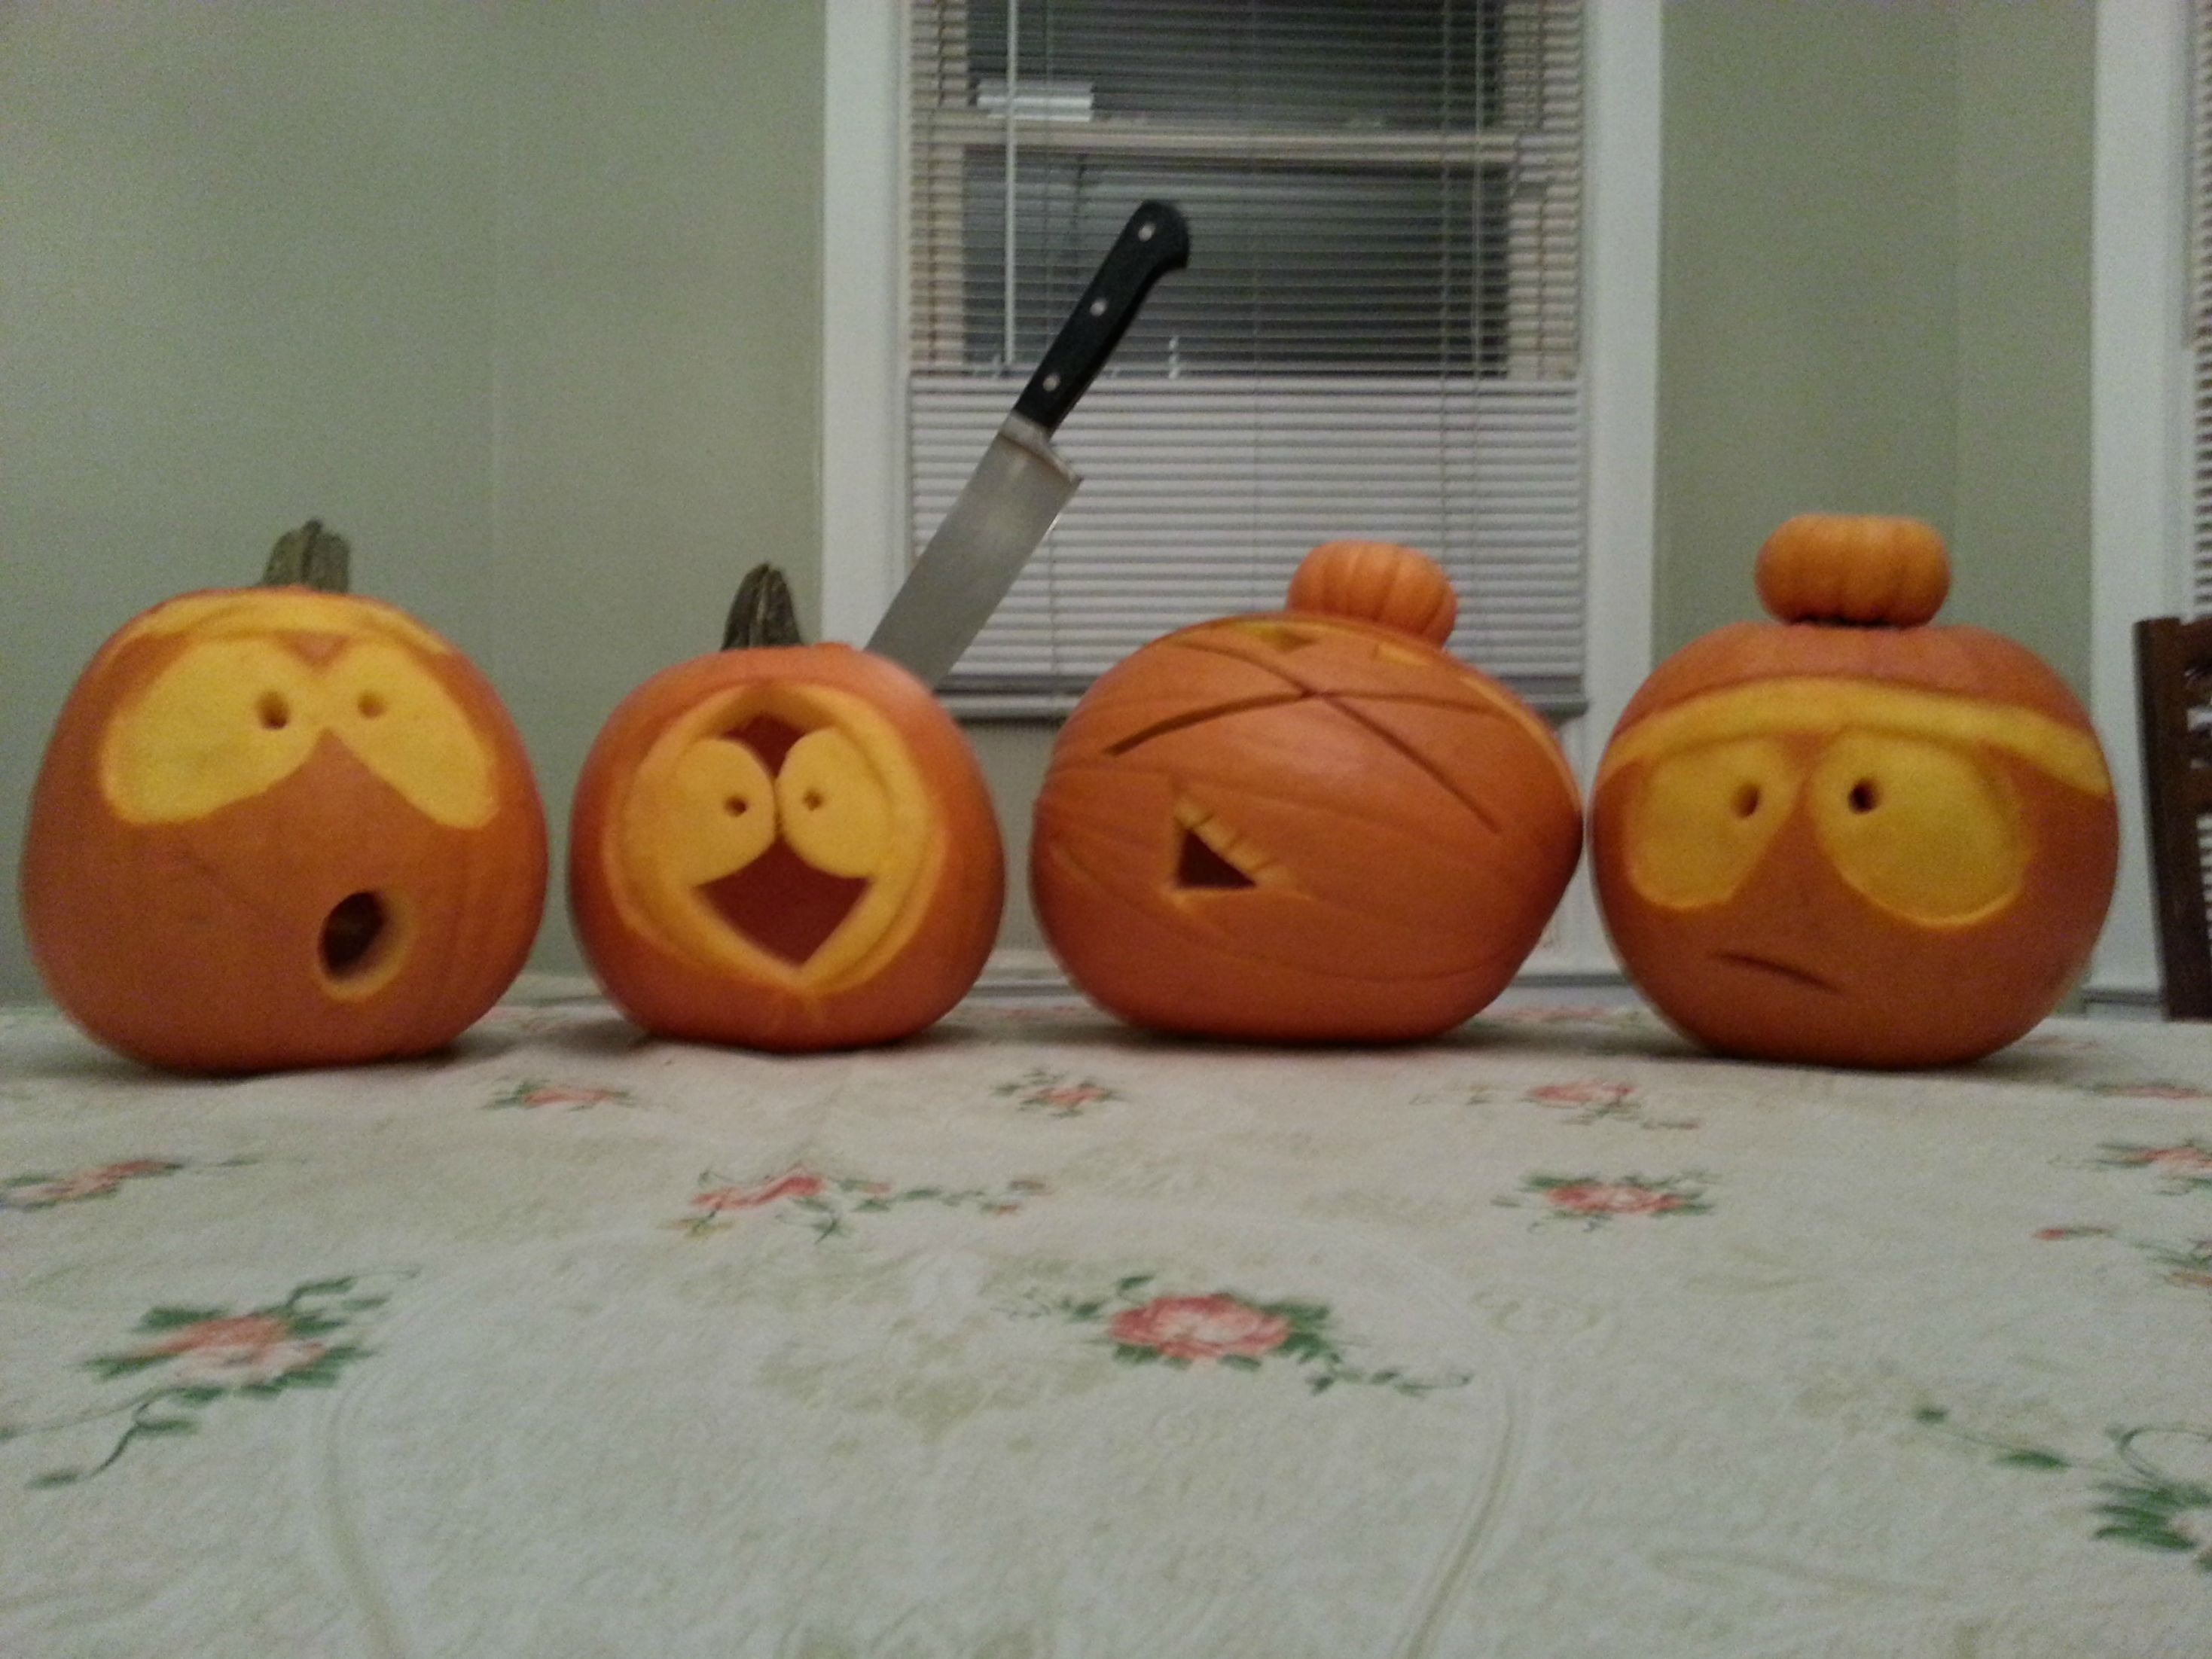 South Park Characters As Halloween Pumpkin Heads